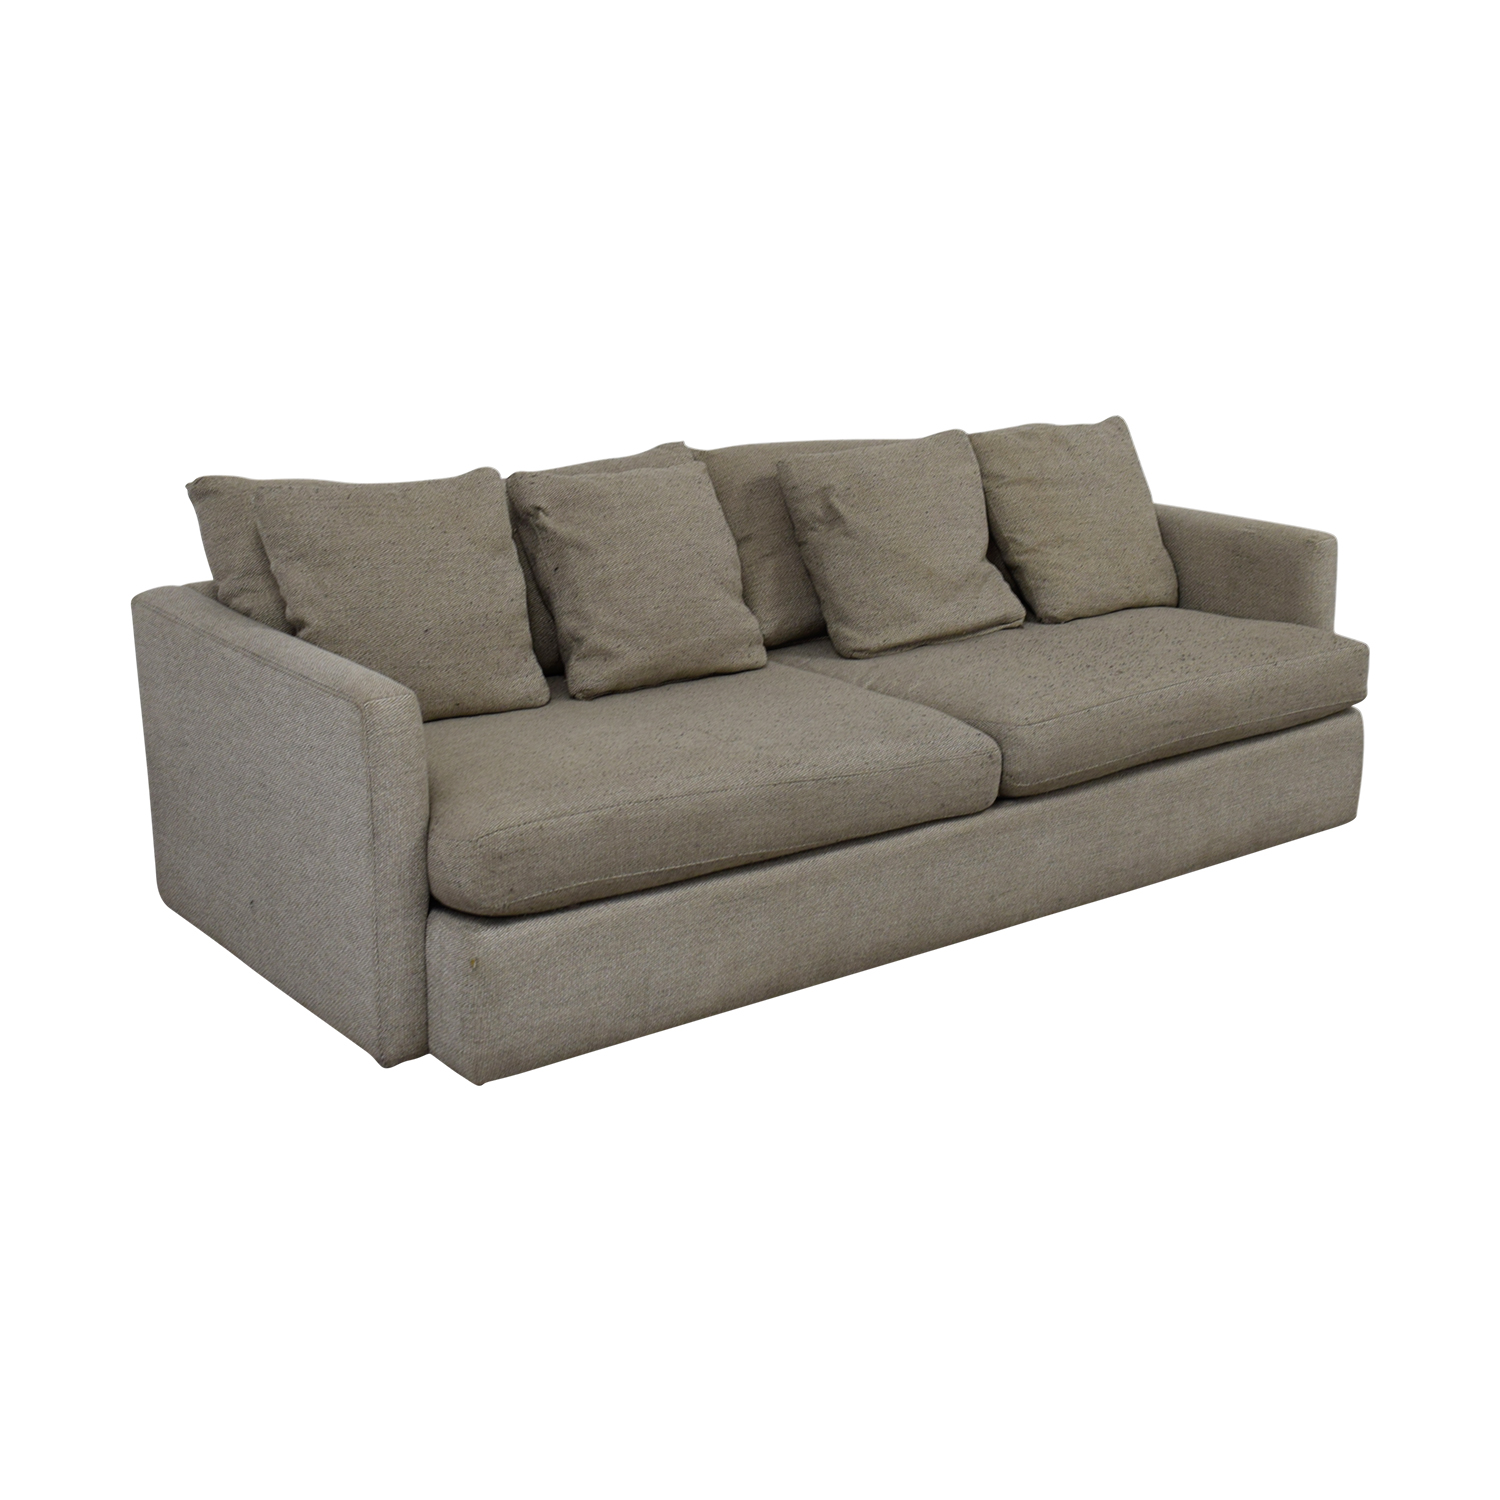 Crate & Barrel Crate & Barrel Cream Two-Cushion Sofa coupon